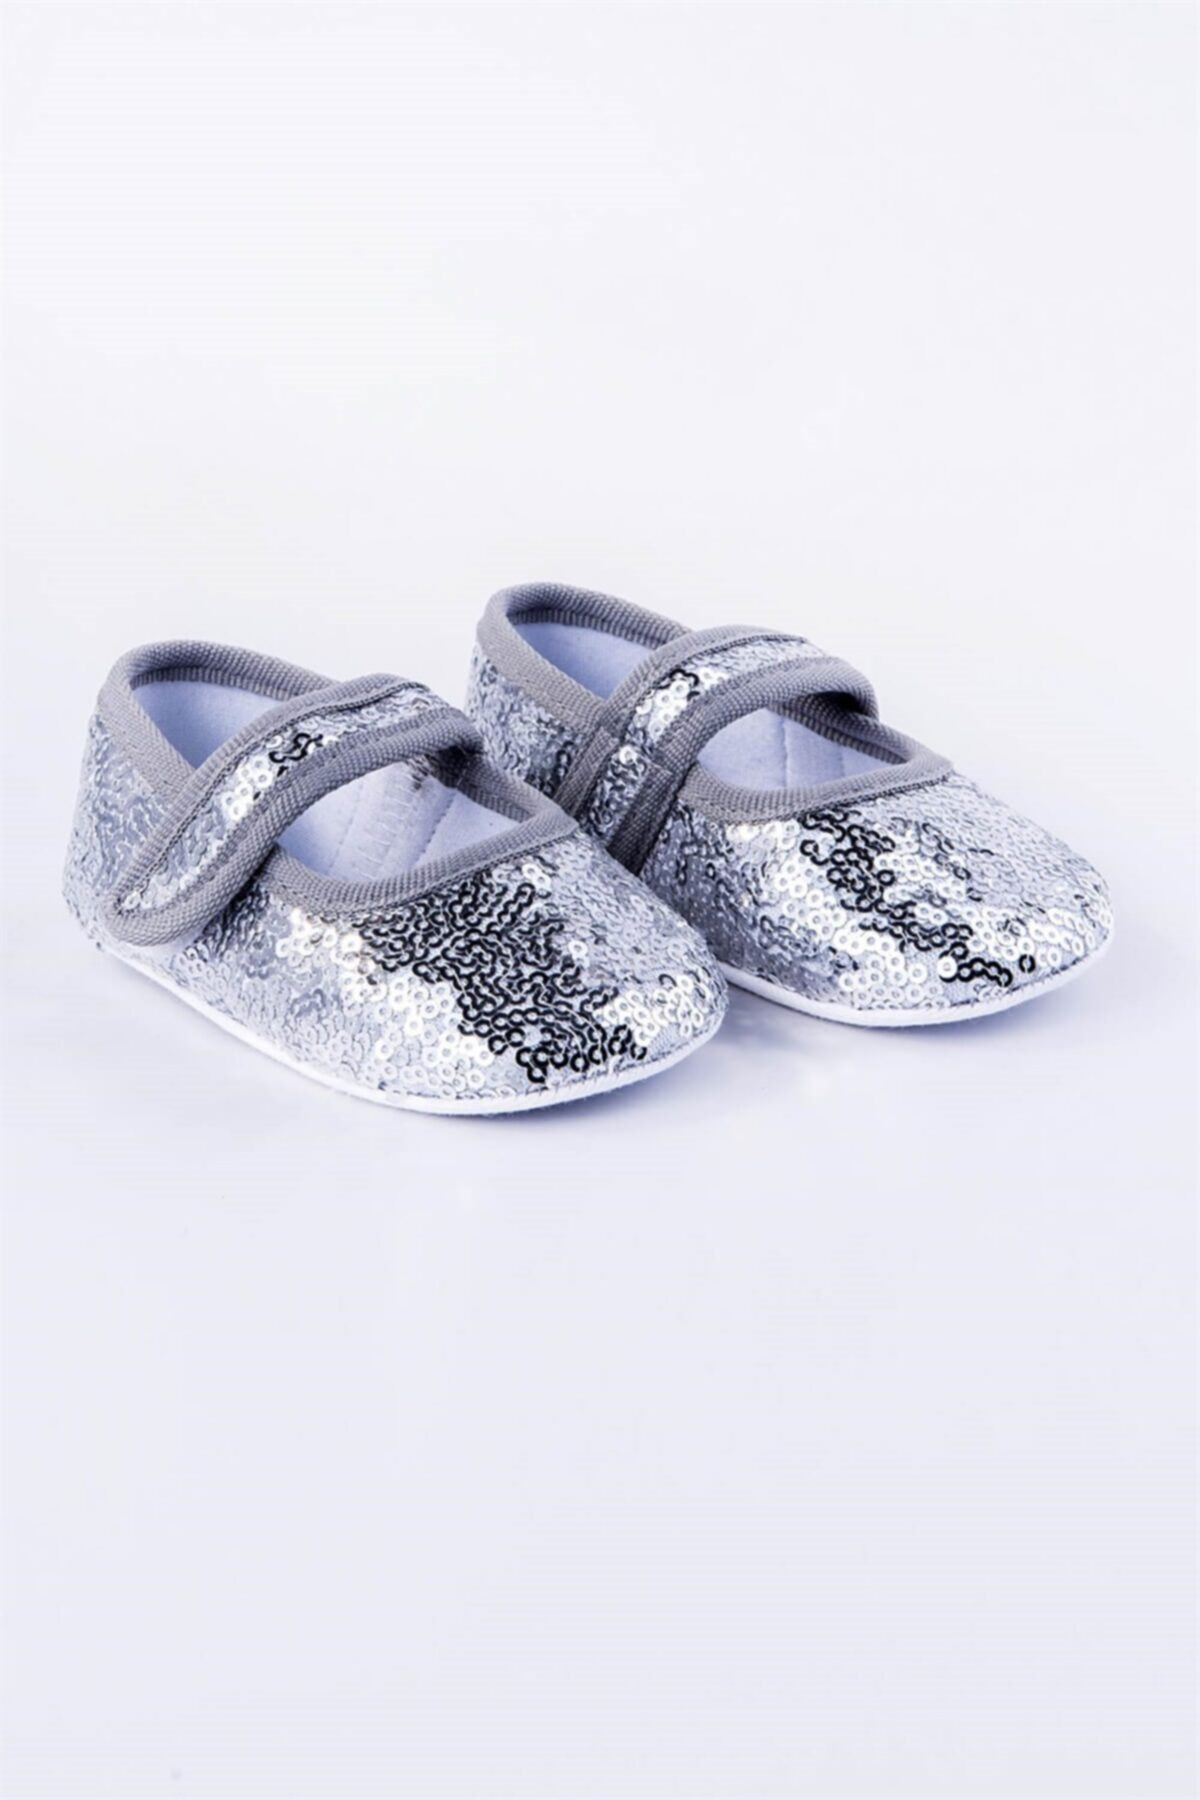 Flaneur Baby Girl Silver Sequined Booties Shoes 2021 Premium Quality